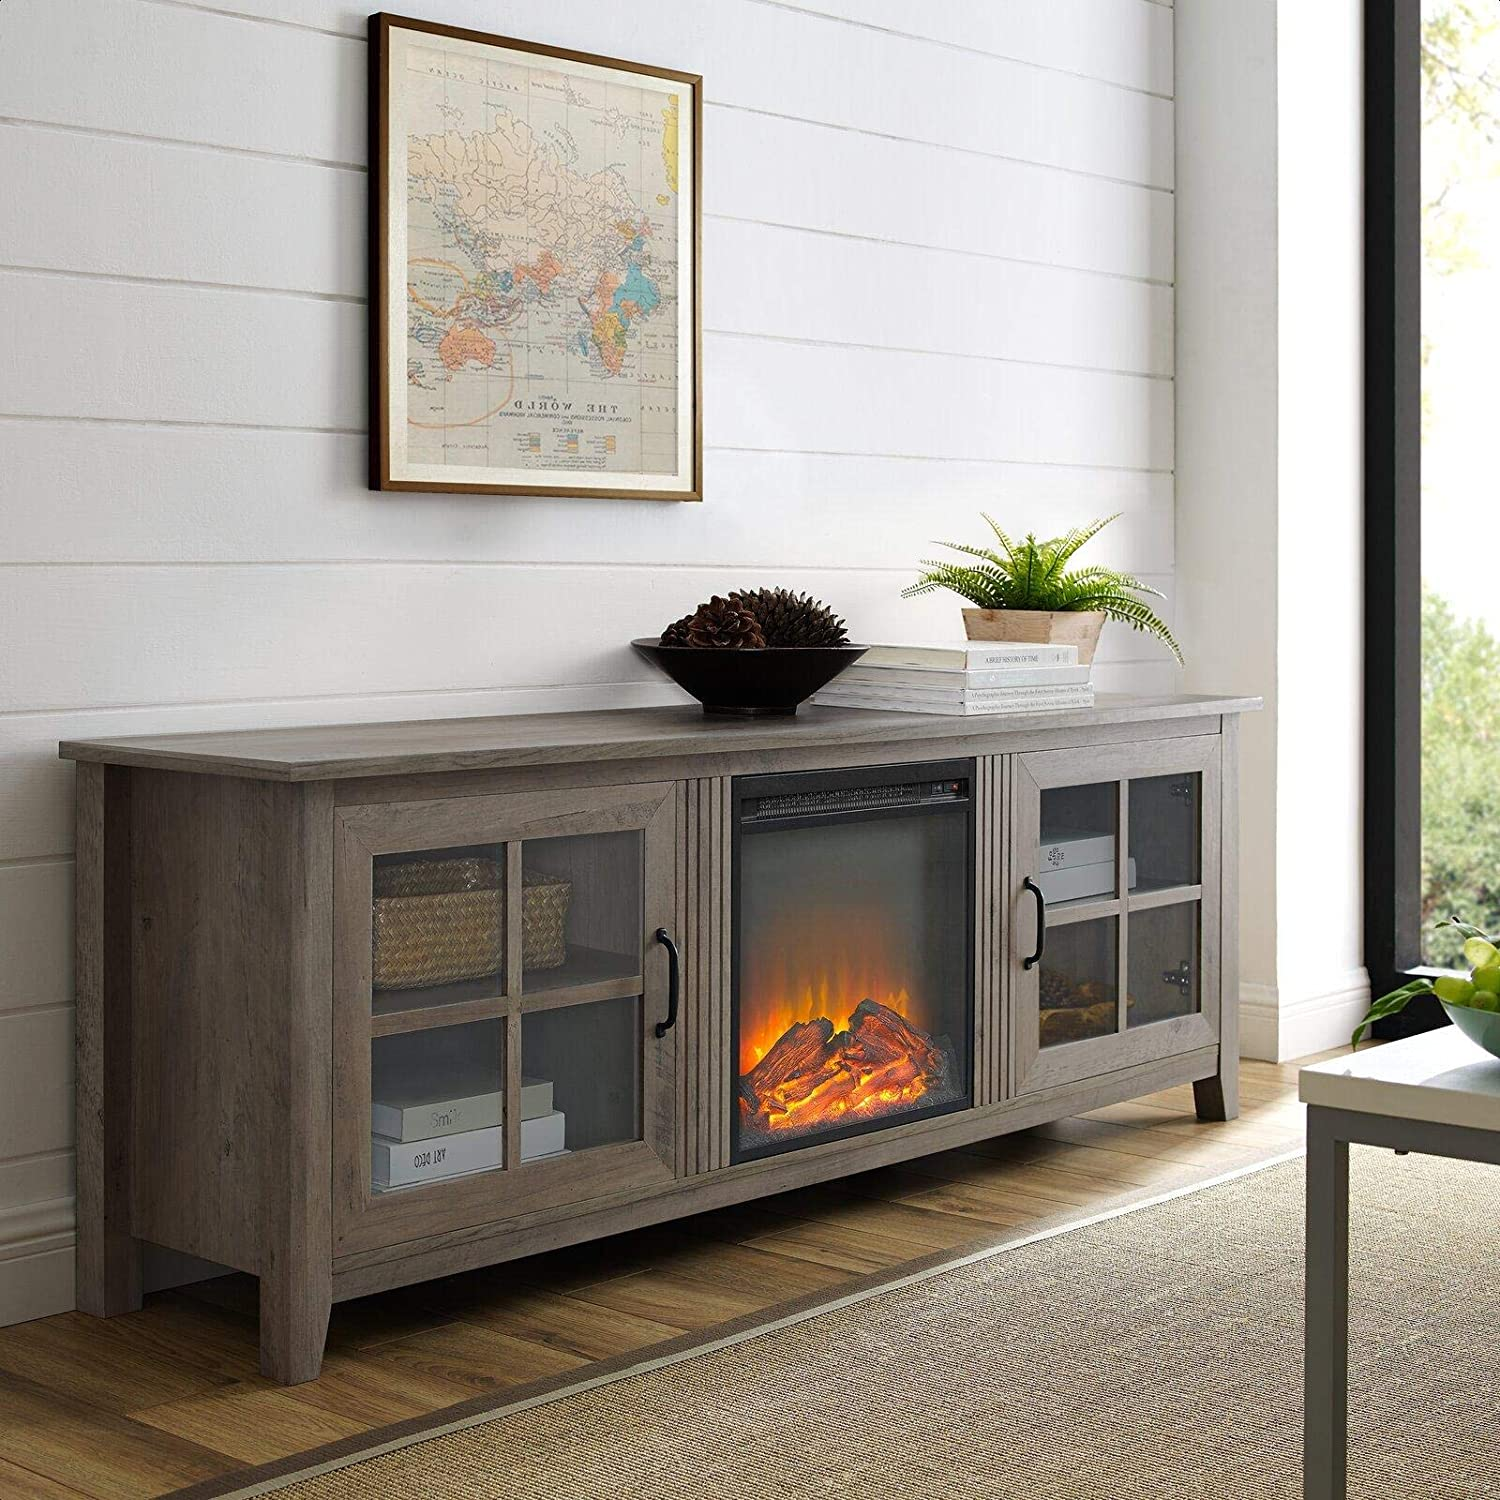 Tv Stand For Tvs Up To 78 With Electric Fireplace Included Home Audio Theater